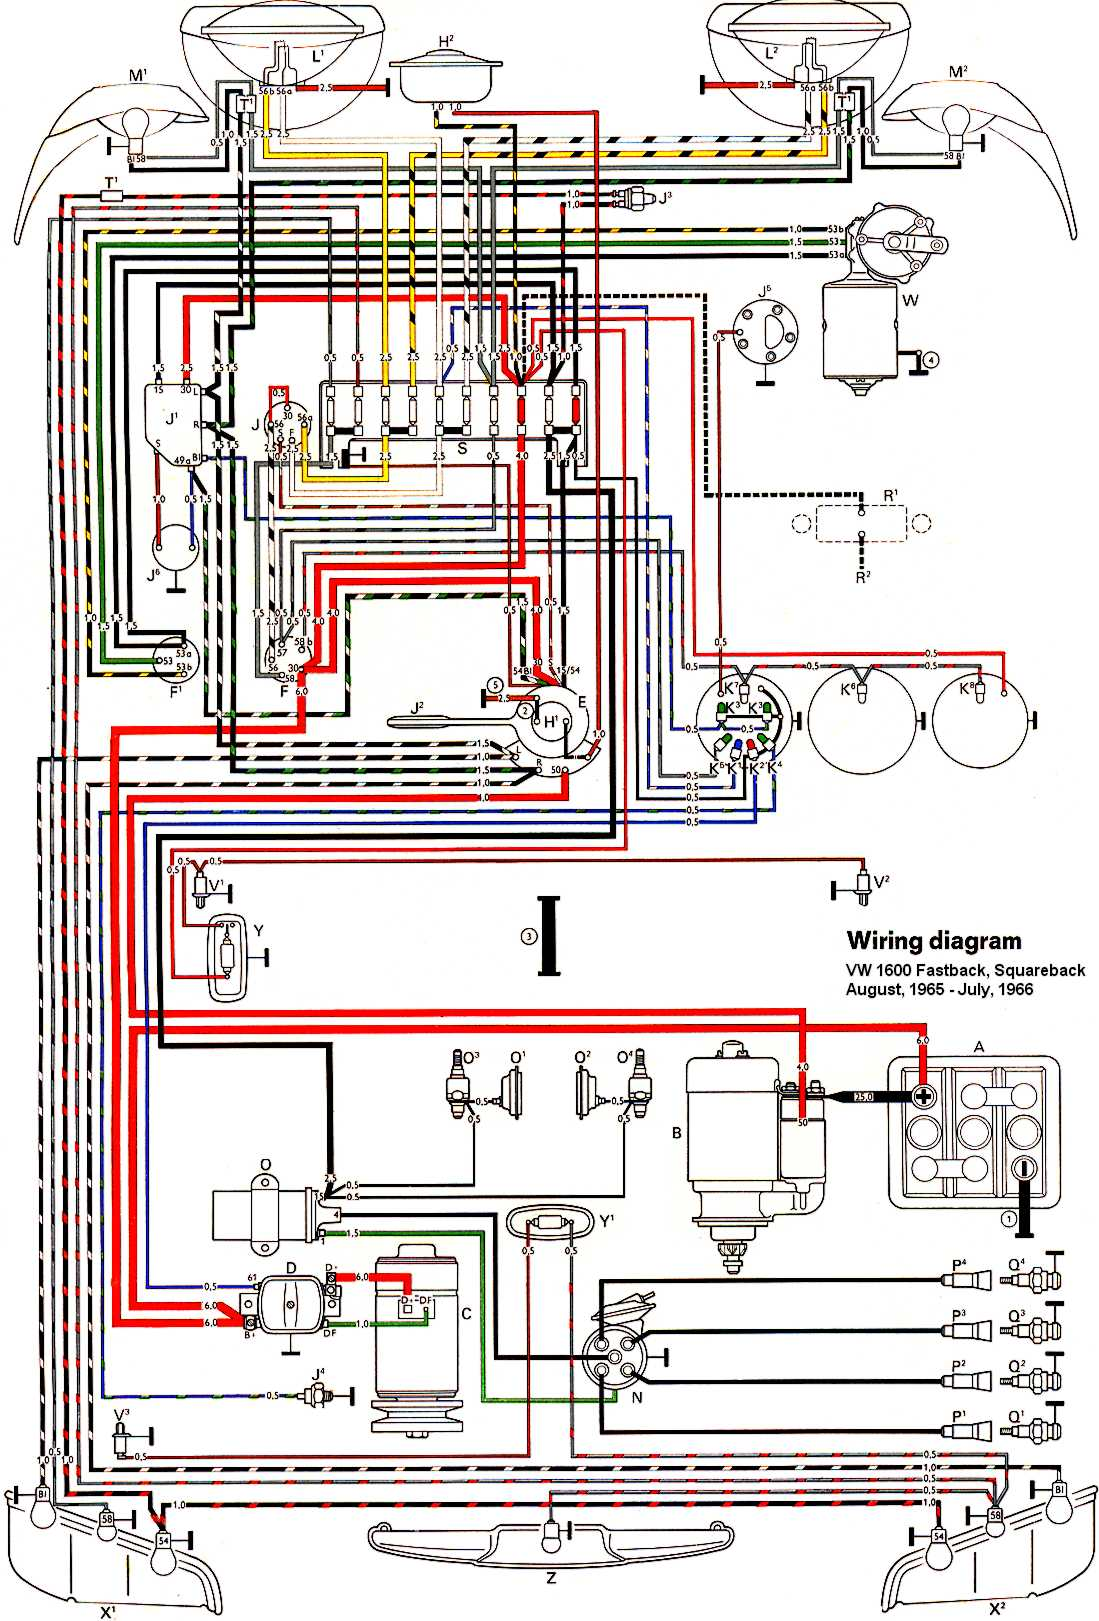 Wiringt3 on 2003 jetta engine diagram